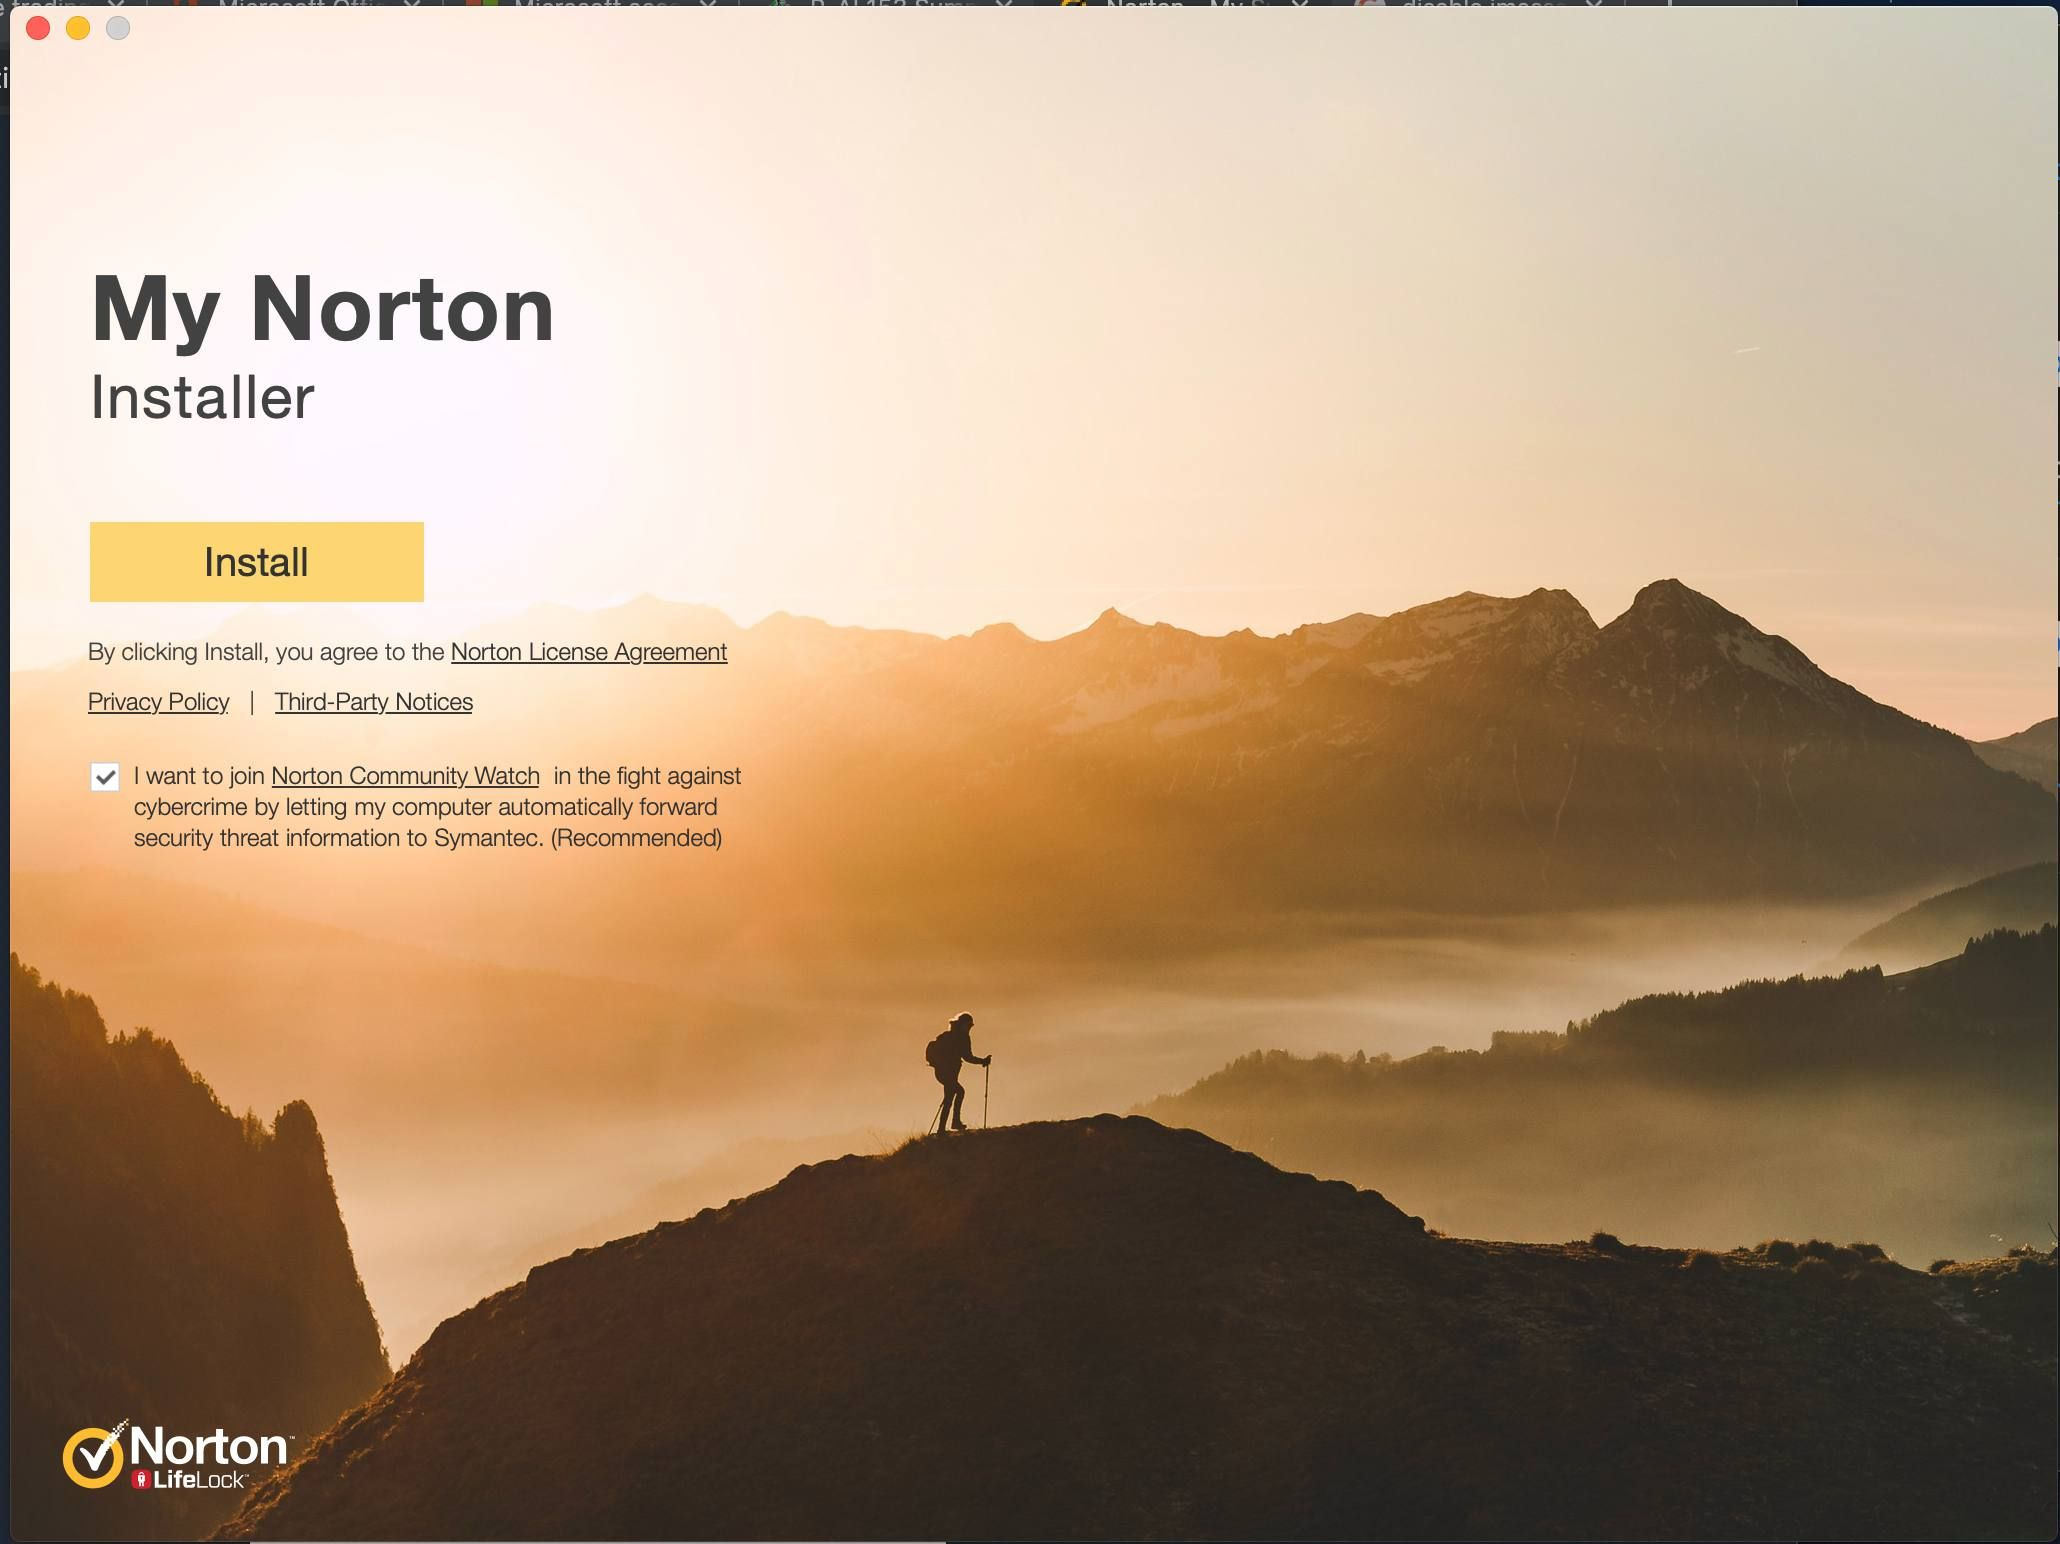 Интерфейс My Norton Installer в macOS